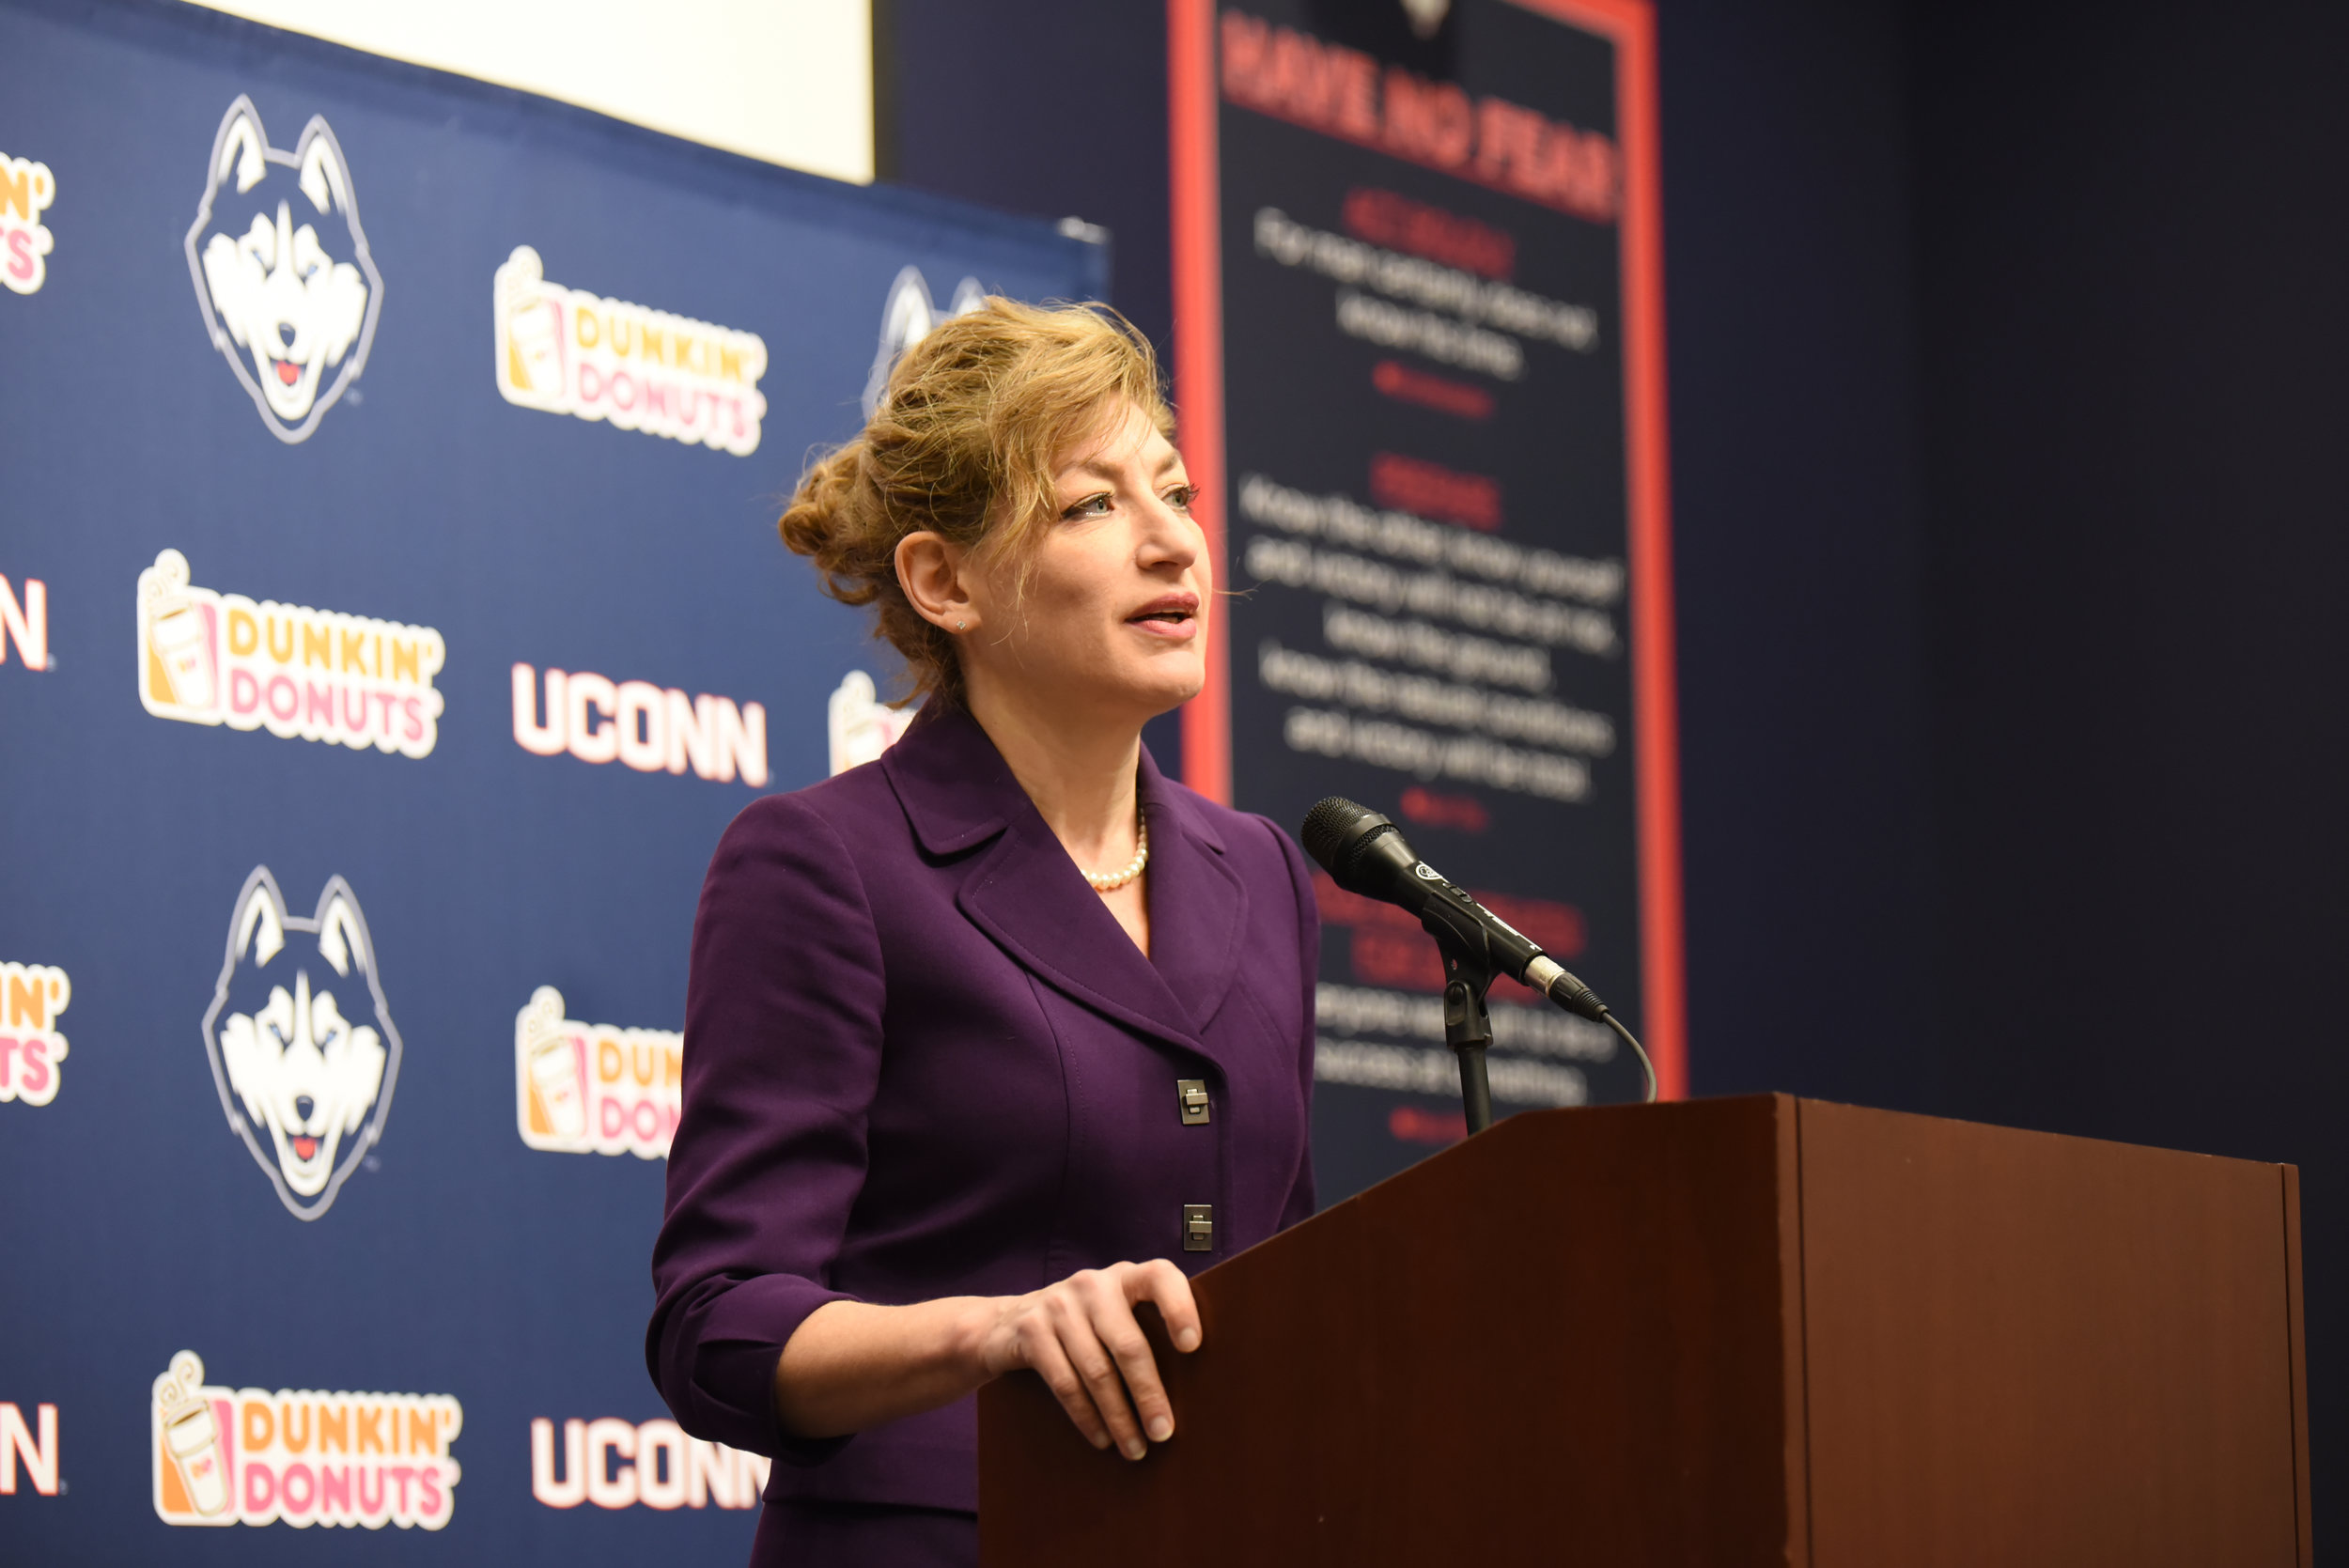 University of Connecticut President Susan Herbst Herbst has held office hours for students since she came to UConn in 2011. She will hold office hours Wednesday, March 6 from 3 p.m. to 5 p.m in her Gulley Hall office.  (Zhelun Lang/The Daily Campus)